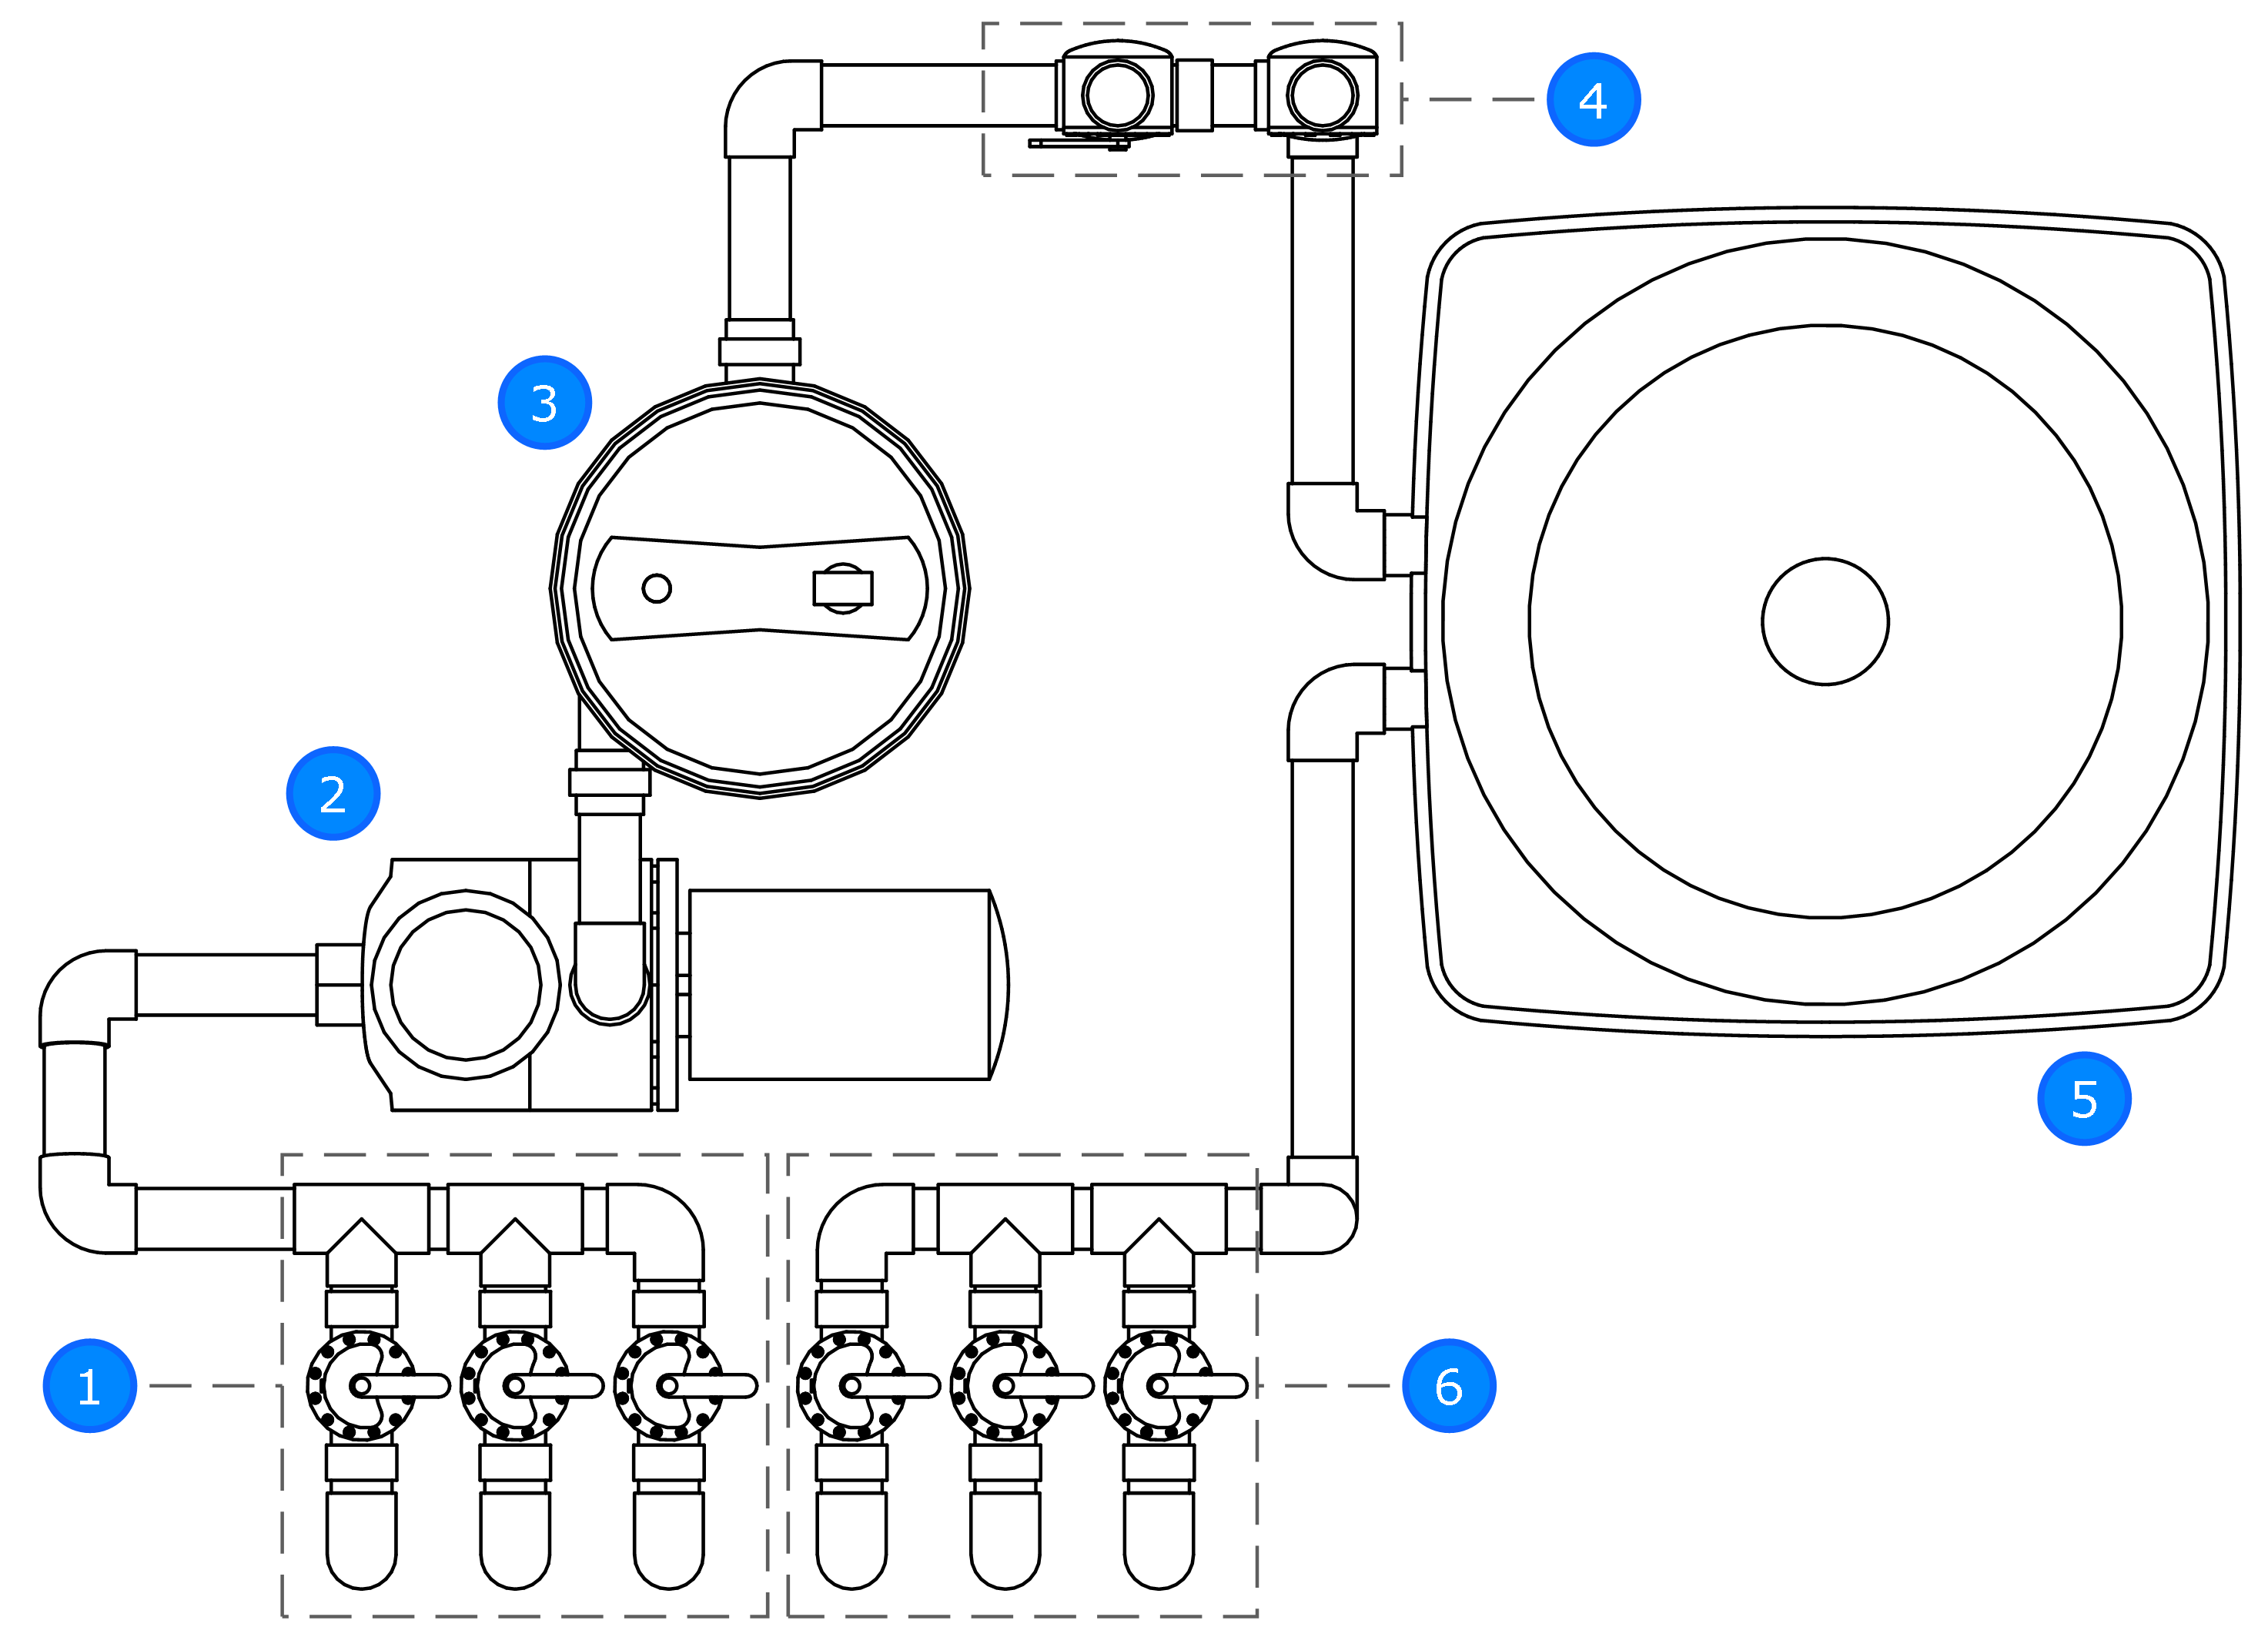 Solar Pool Heat Plumbing Drawing